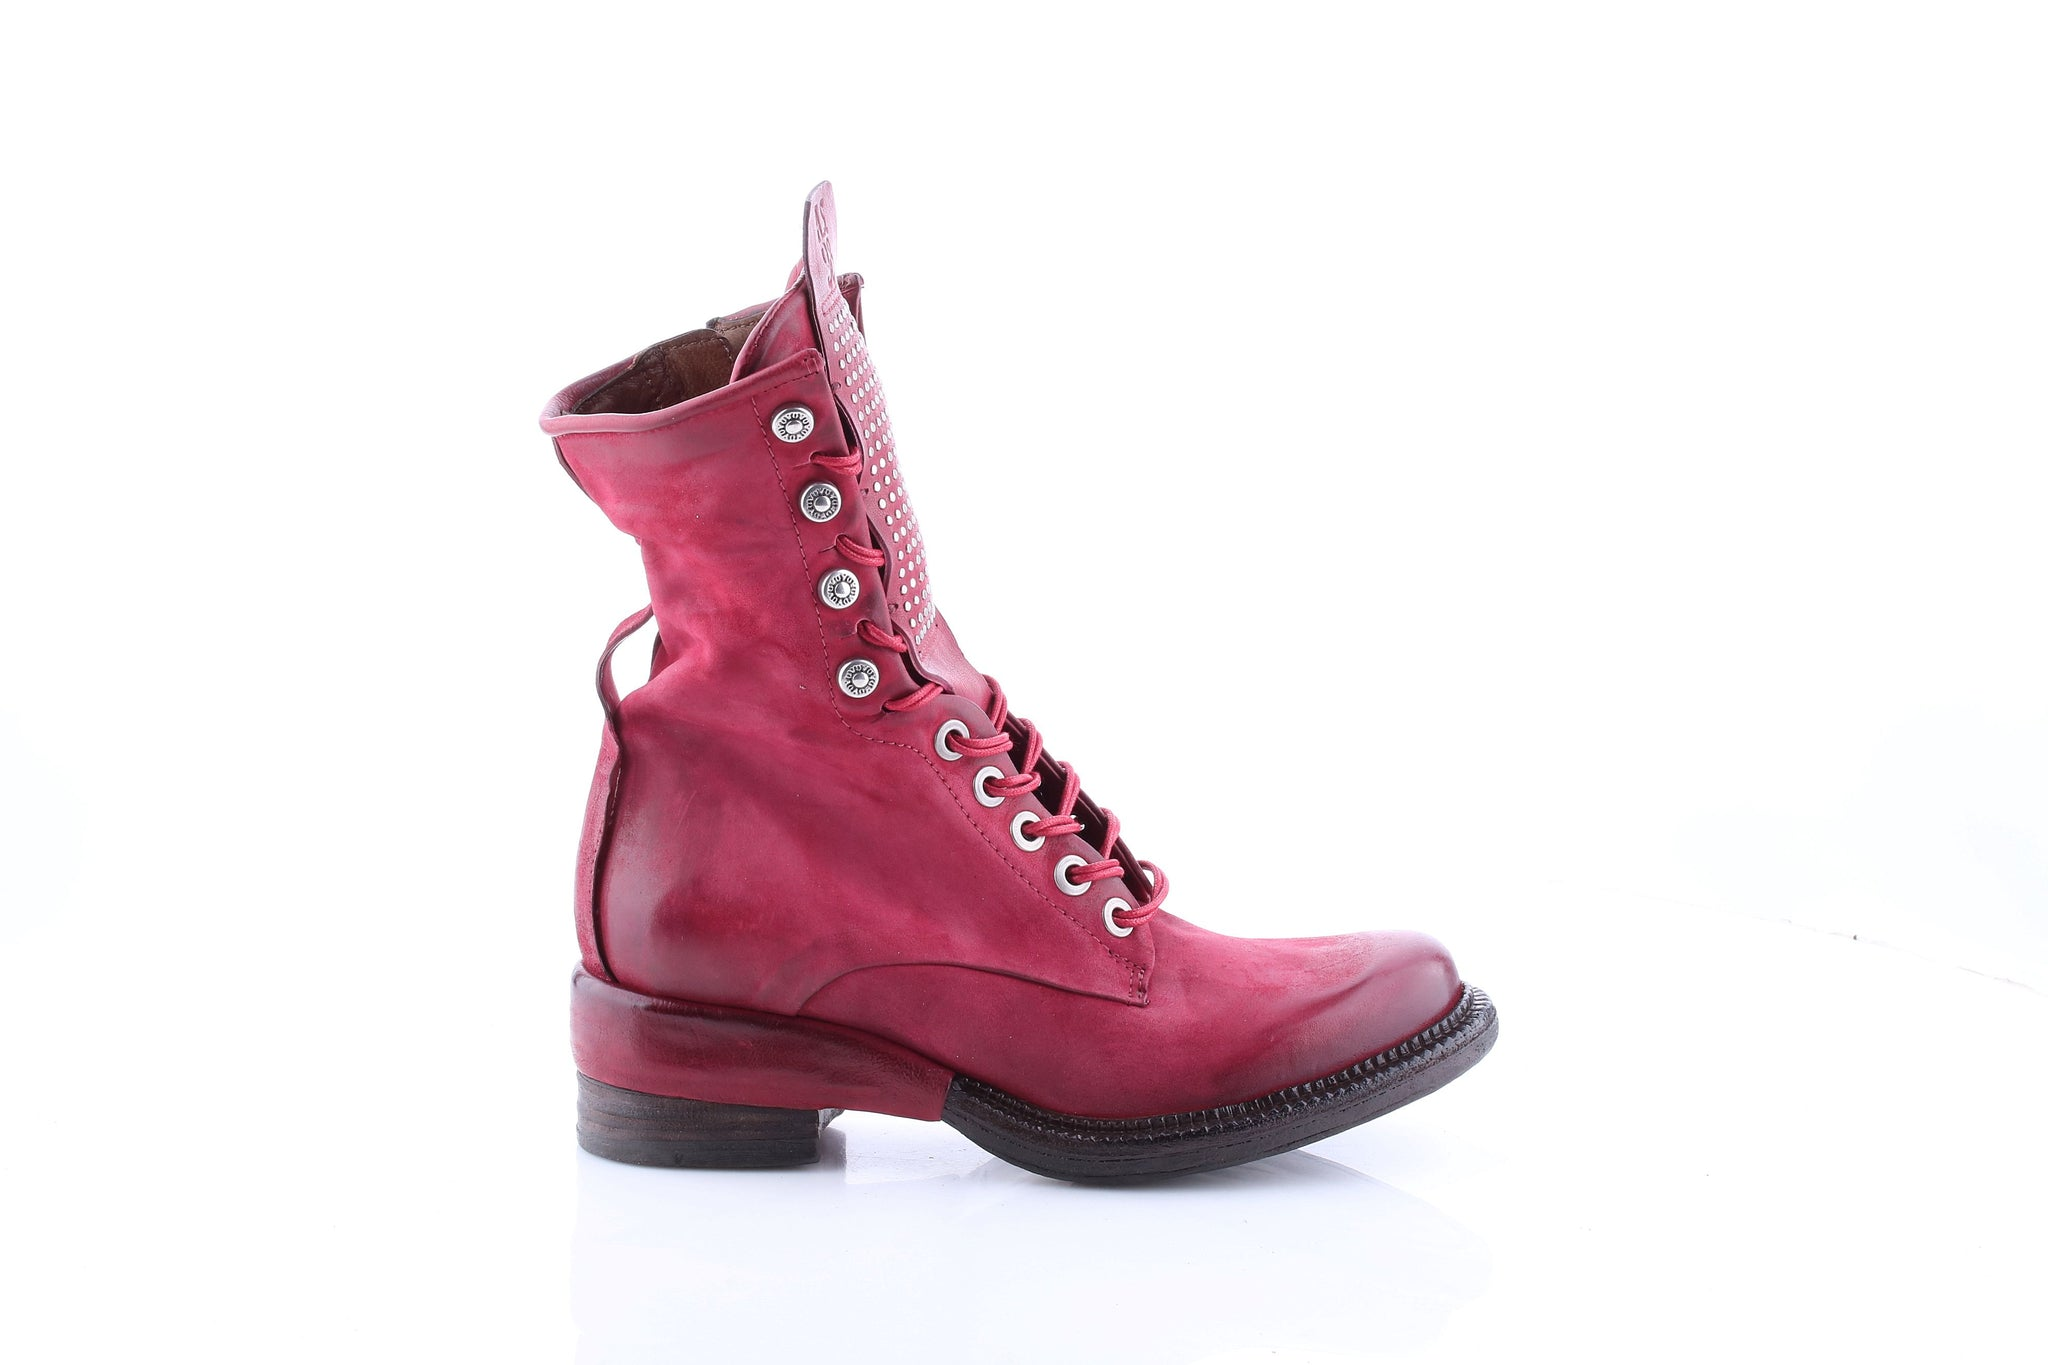 AS98 Italian Leather Boots in Cardinal